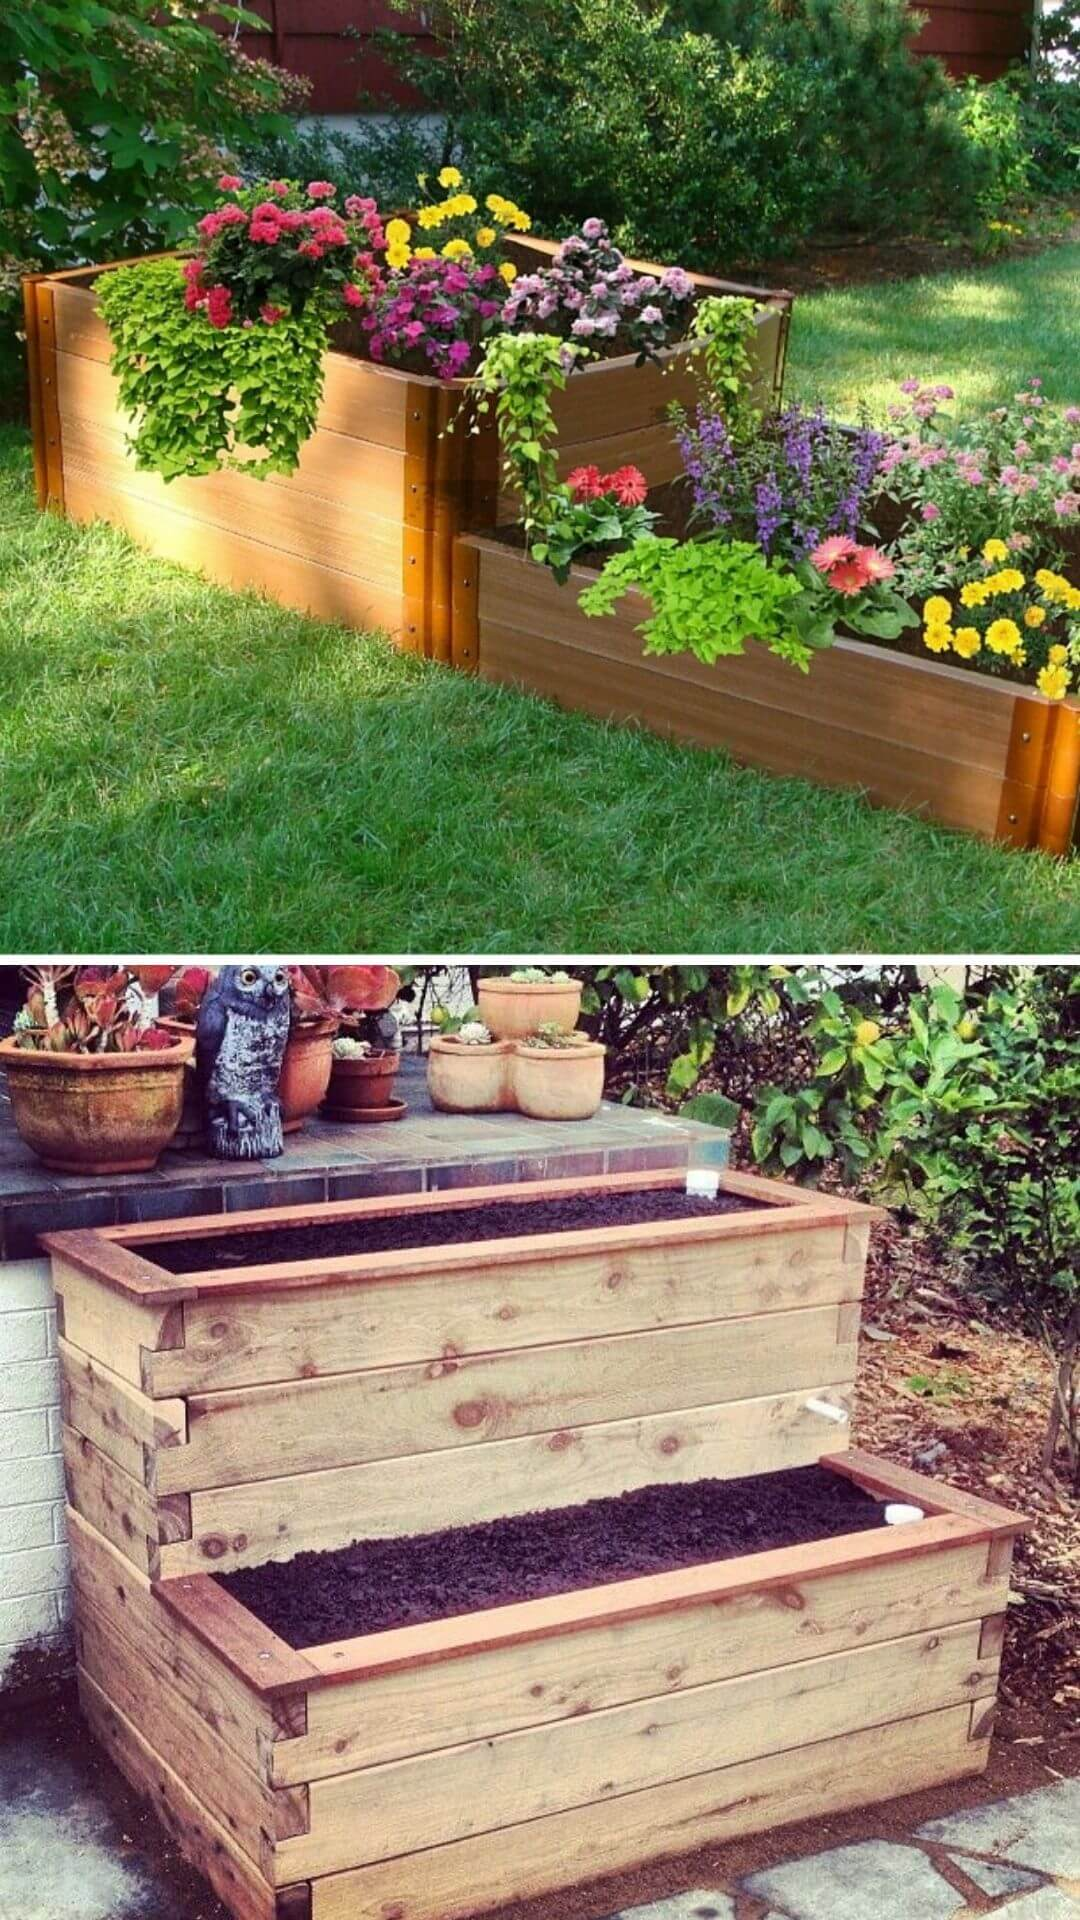 15+ Clever DIY Raised Garden Bed Ideas & Plans For Urban ...